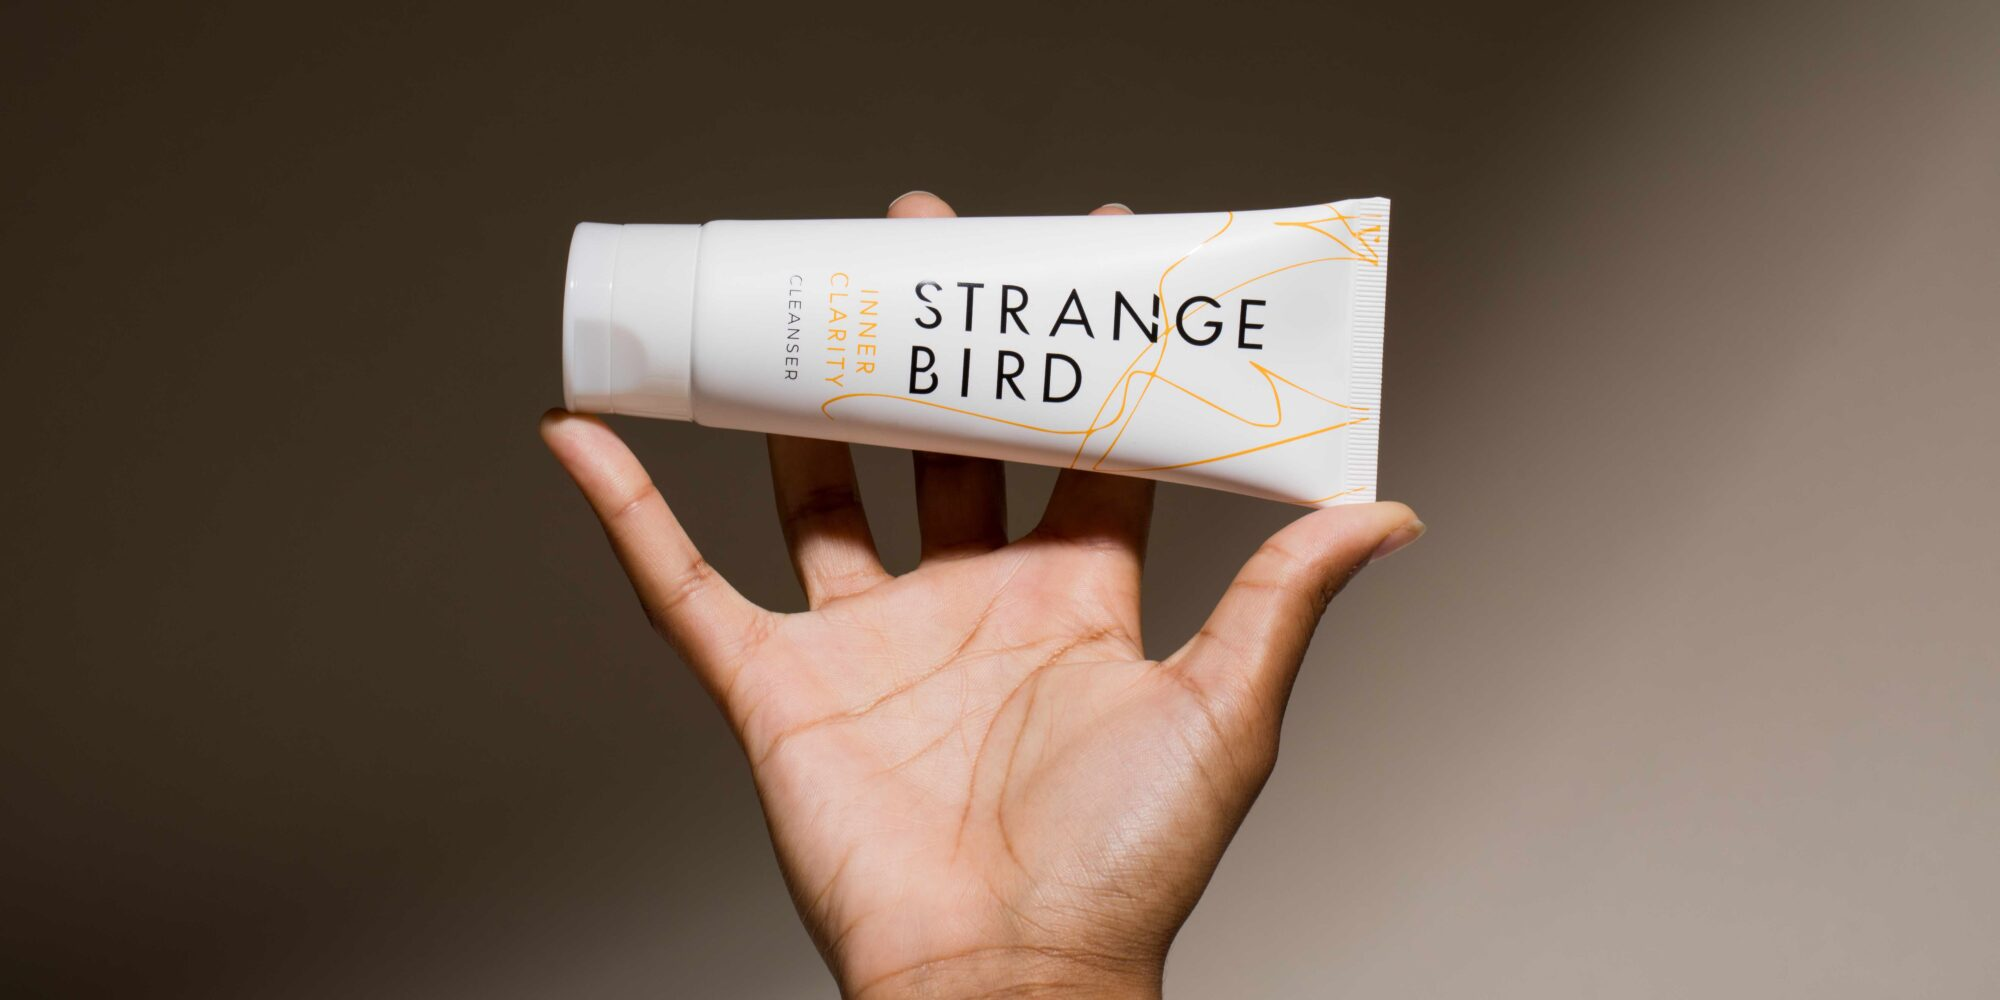 Strange Bird Founder Tina Chow Rudolf Opens Up About Why She Chose Her Contract Manufacturer